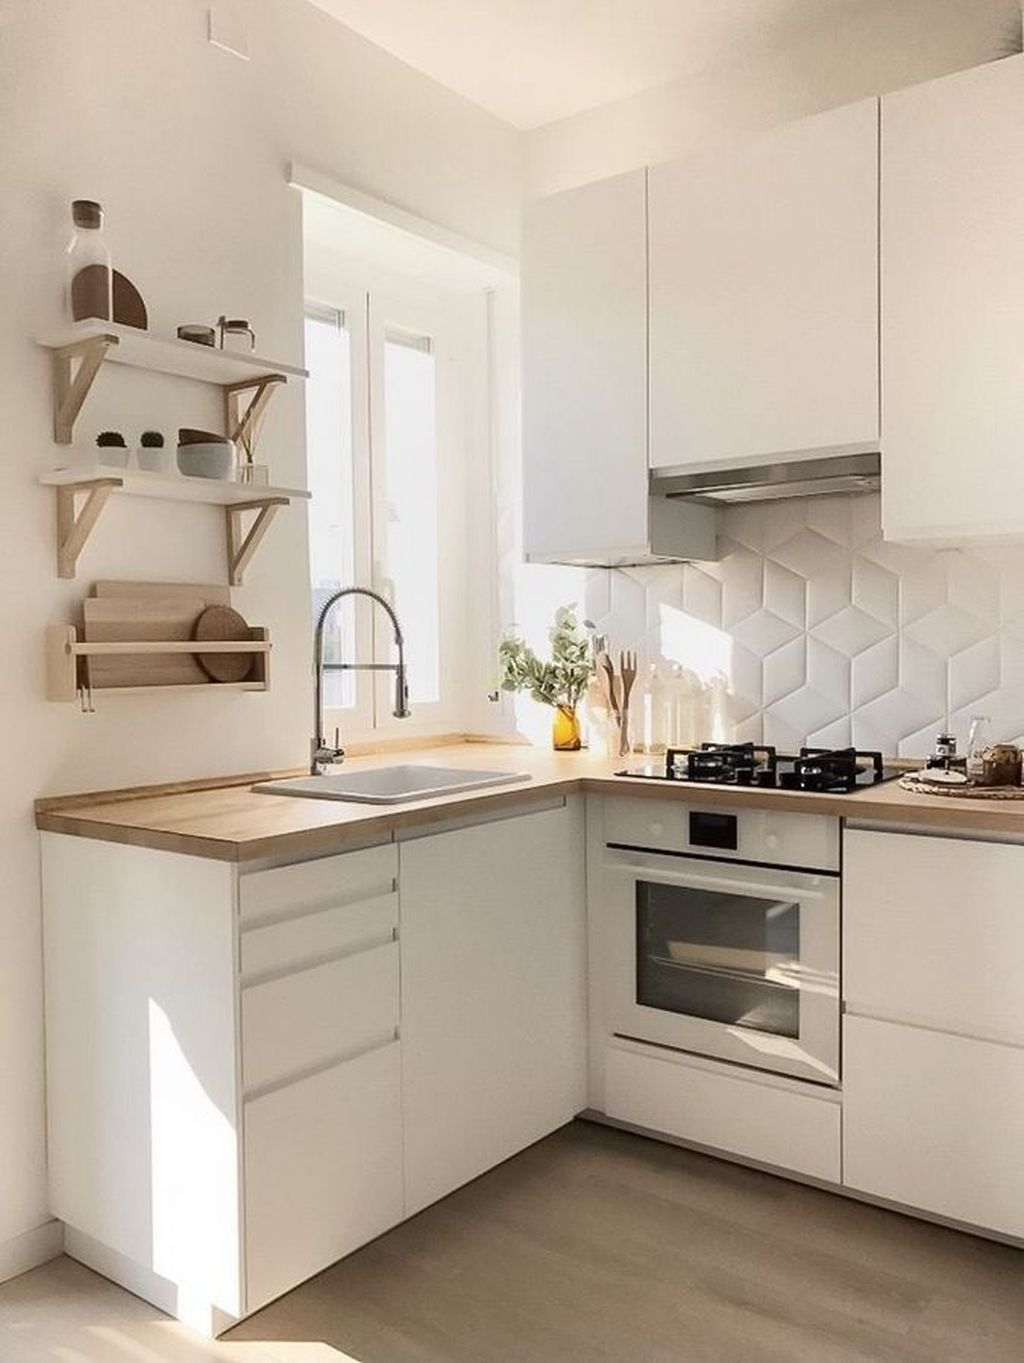 Cool 35 Amazing Small Apartment Kitchen Ideas More At Https Homishome Com 2019 01 22 35 Ama Ikea Kitchen Design Small Apartment Kitchen Kitchen Design Small